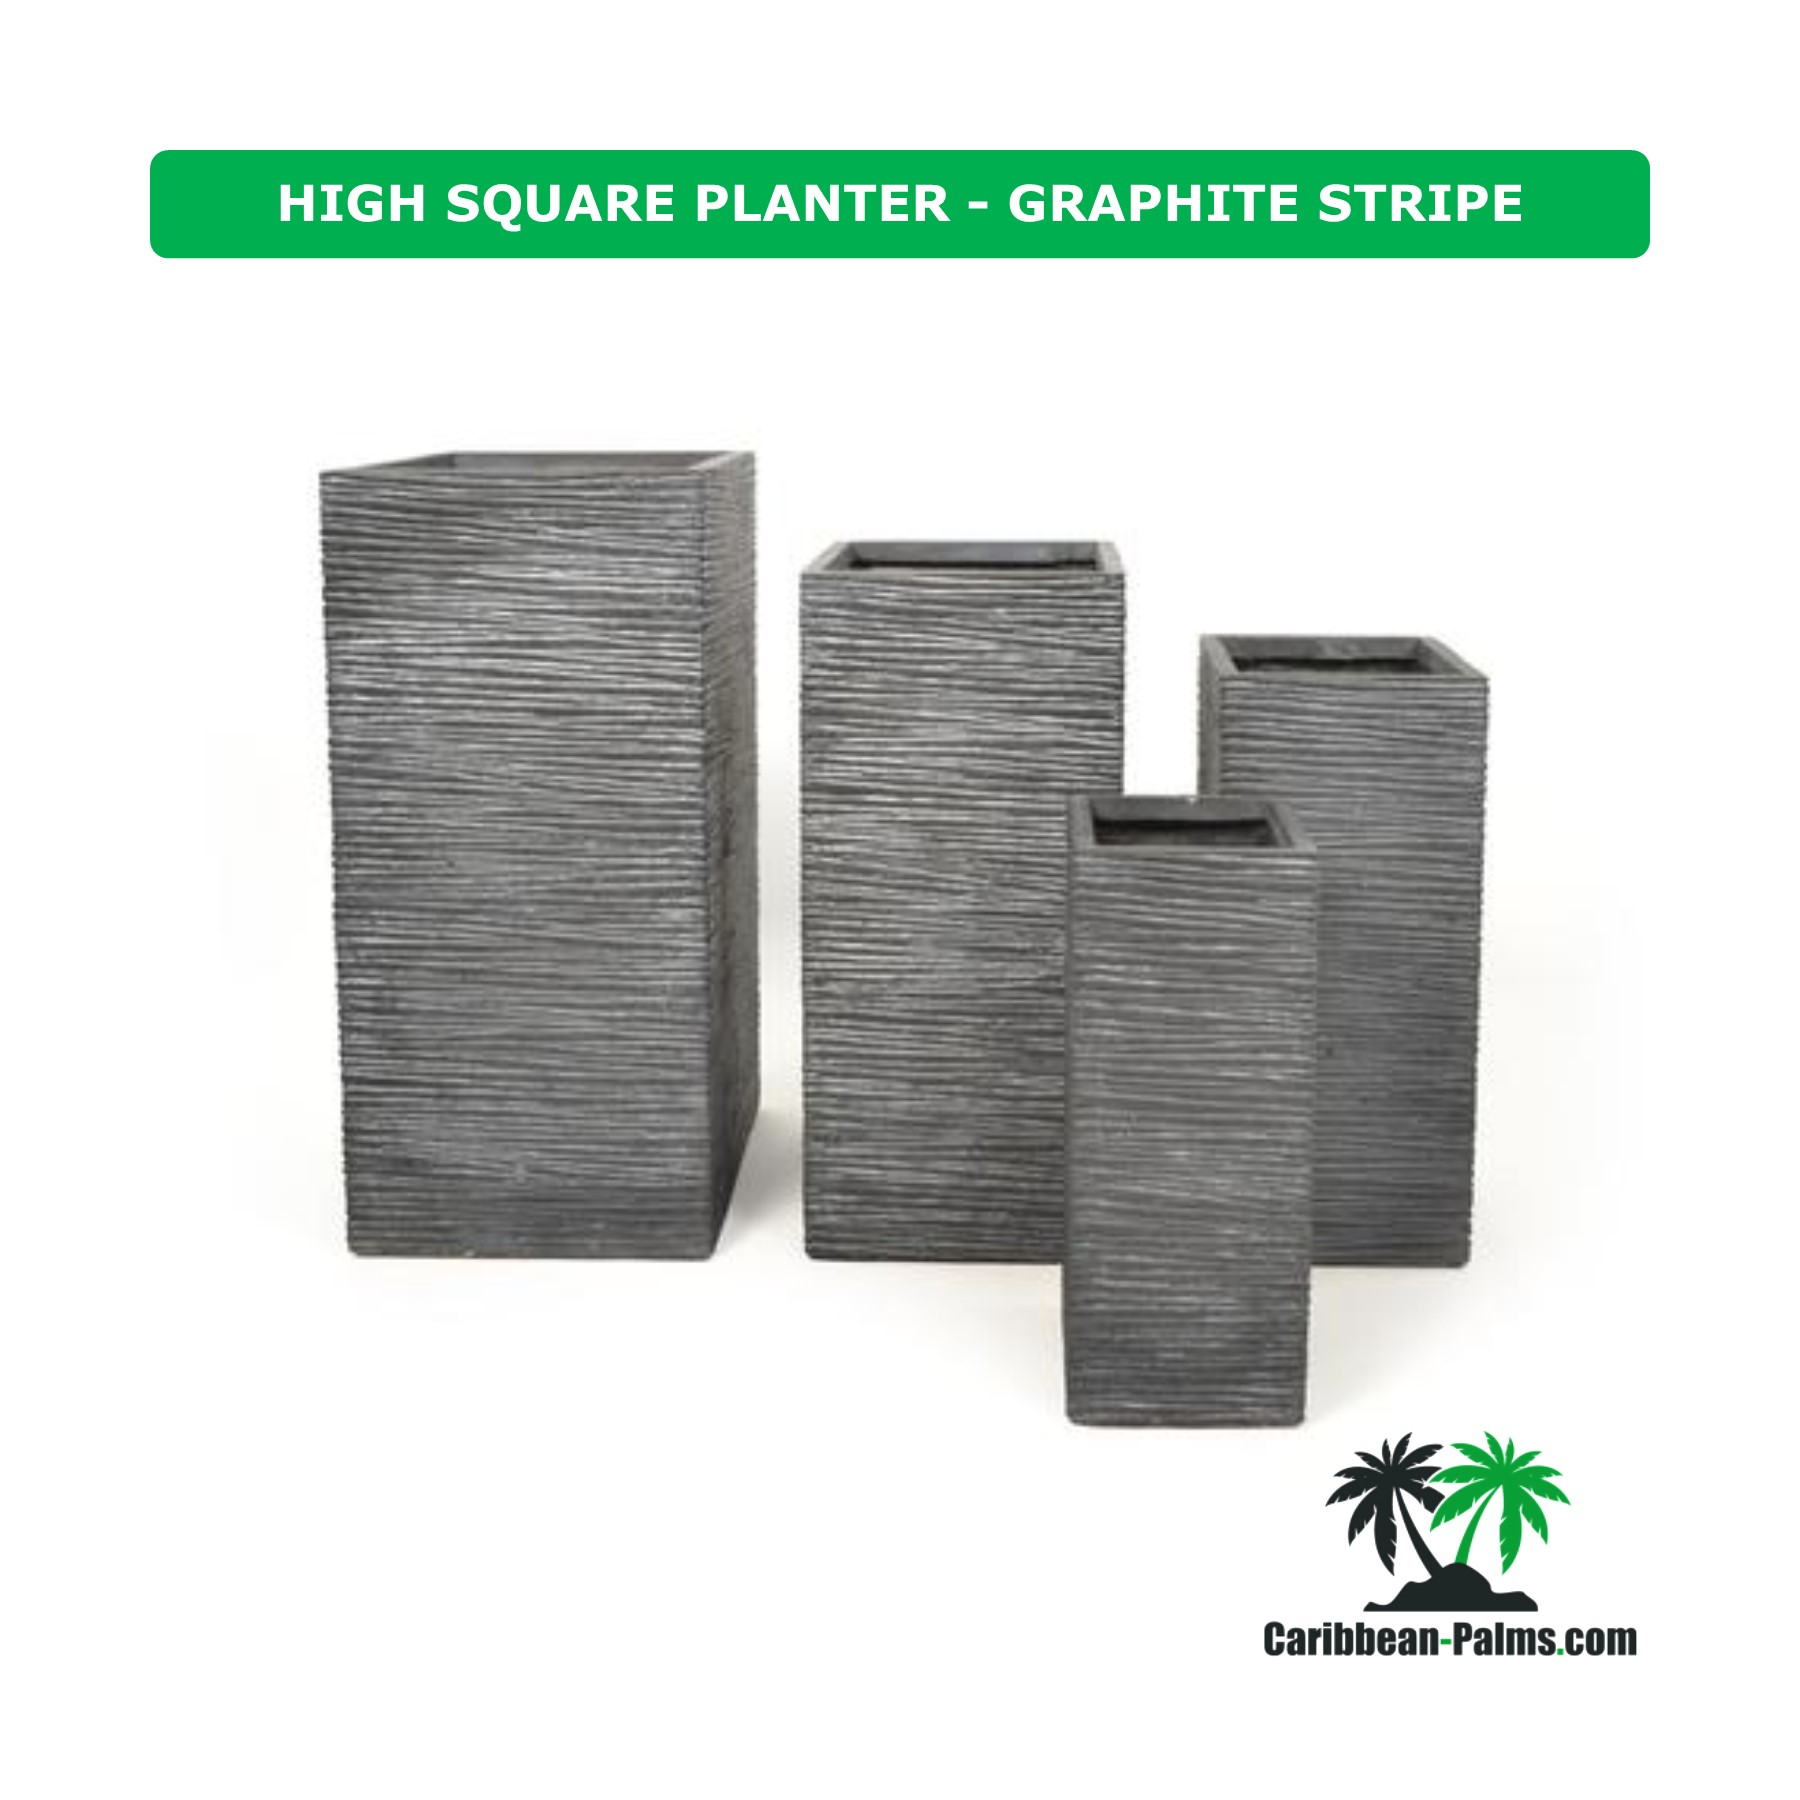 HIGH SQUARE PLANTER GRAPHITE STRIPE